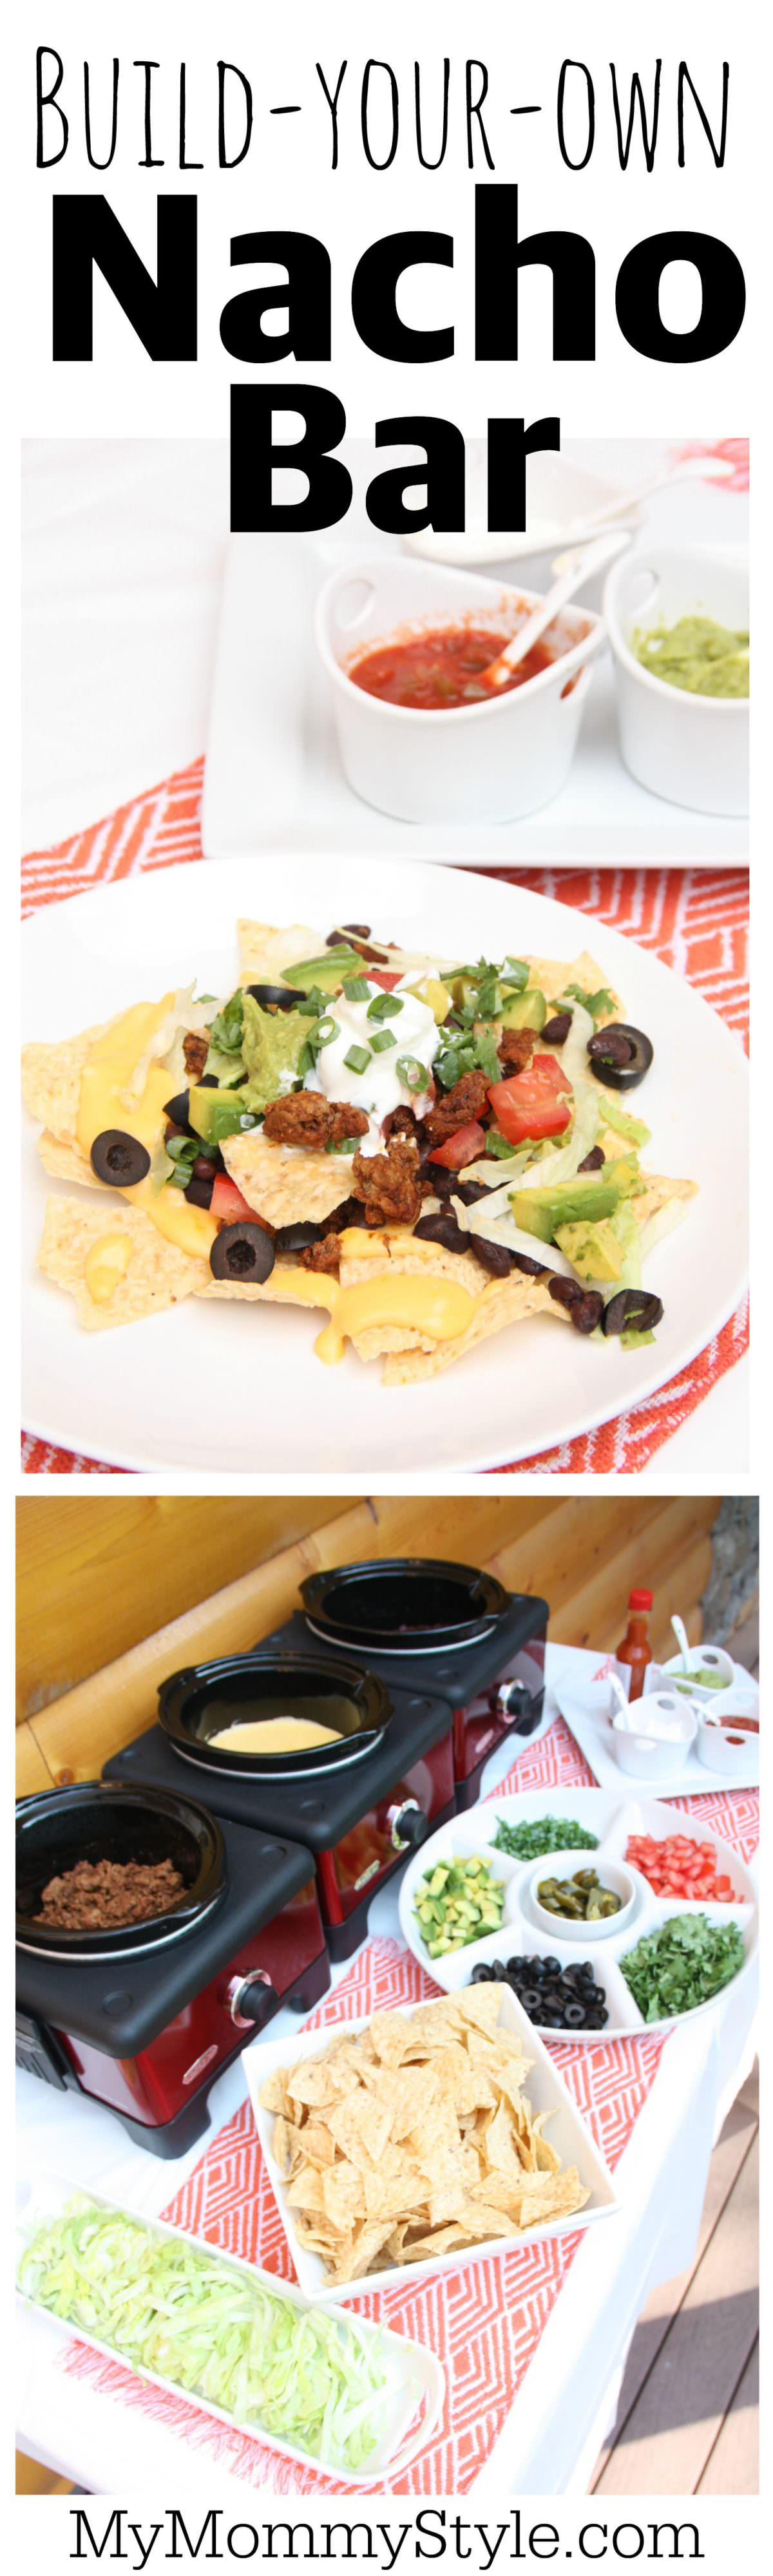 Build-Your-Own Nacho Bar is such a fun and colorful way to feed a crowd. Add or don't add what ever you want to create your own nacho masterpiece. via @mymommystyle